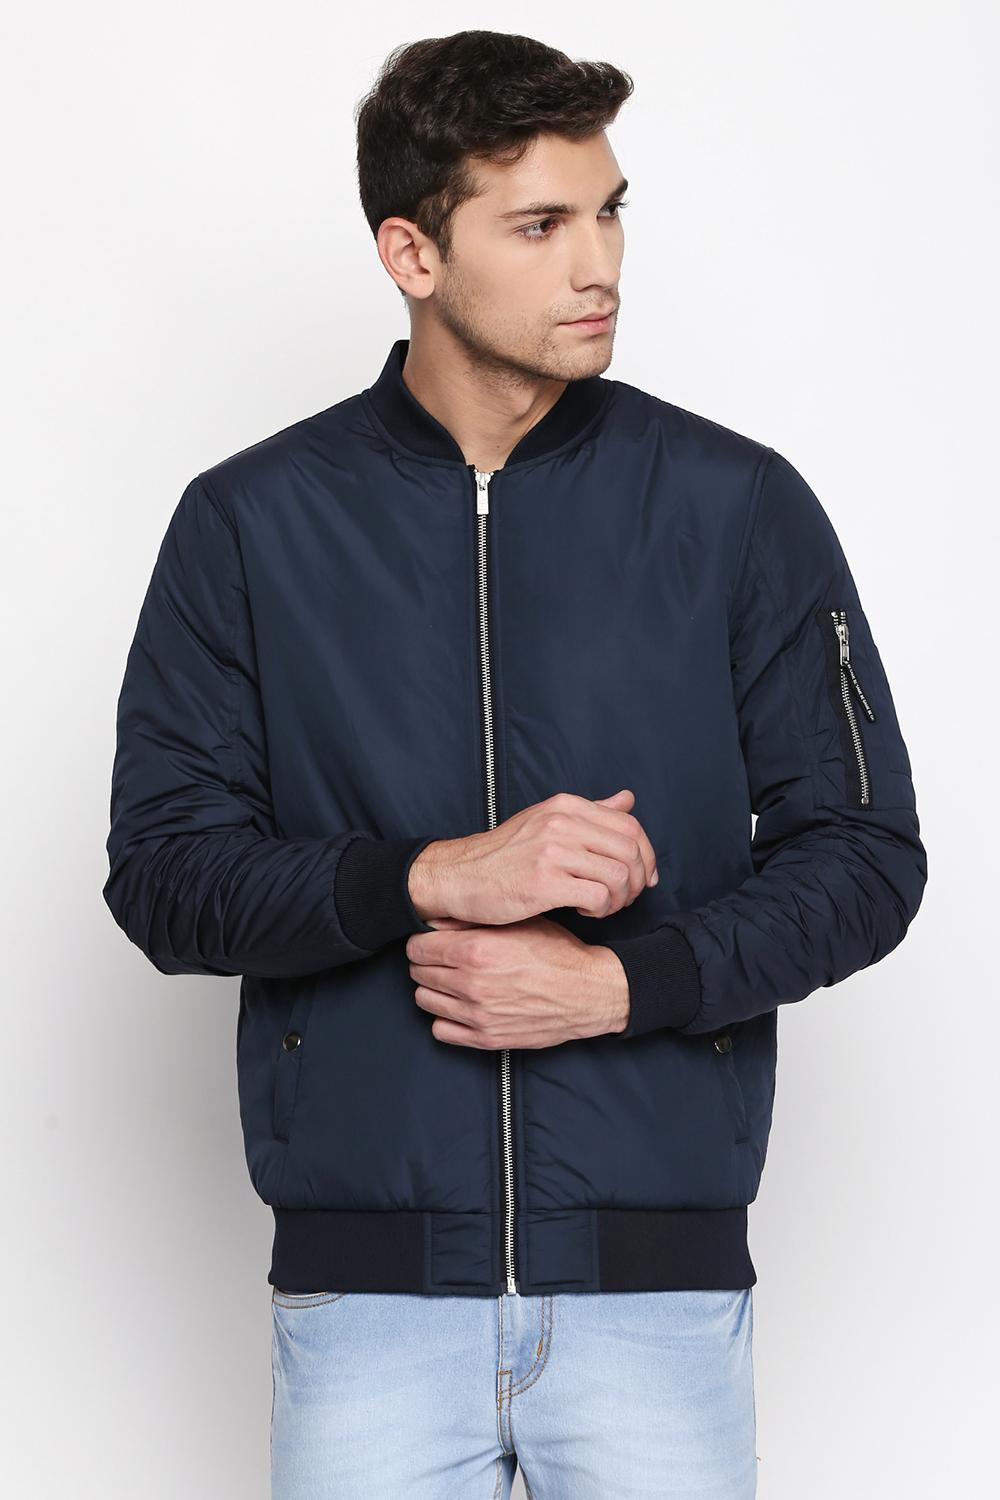 759d14c188 Shop Branded Jackets for Men Online in India at Pantaloons Online Store